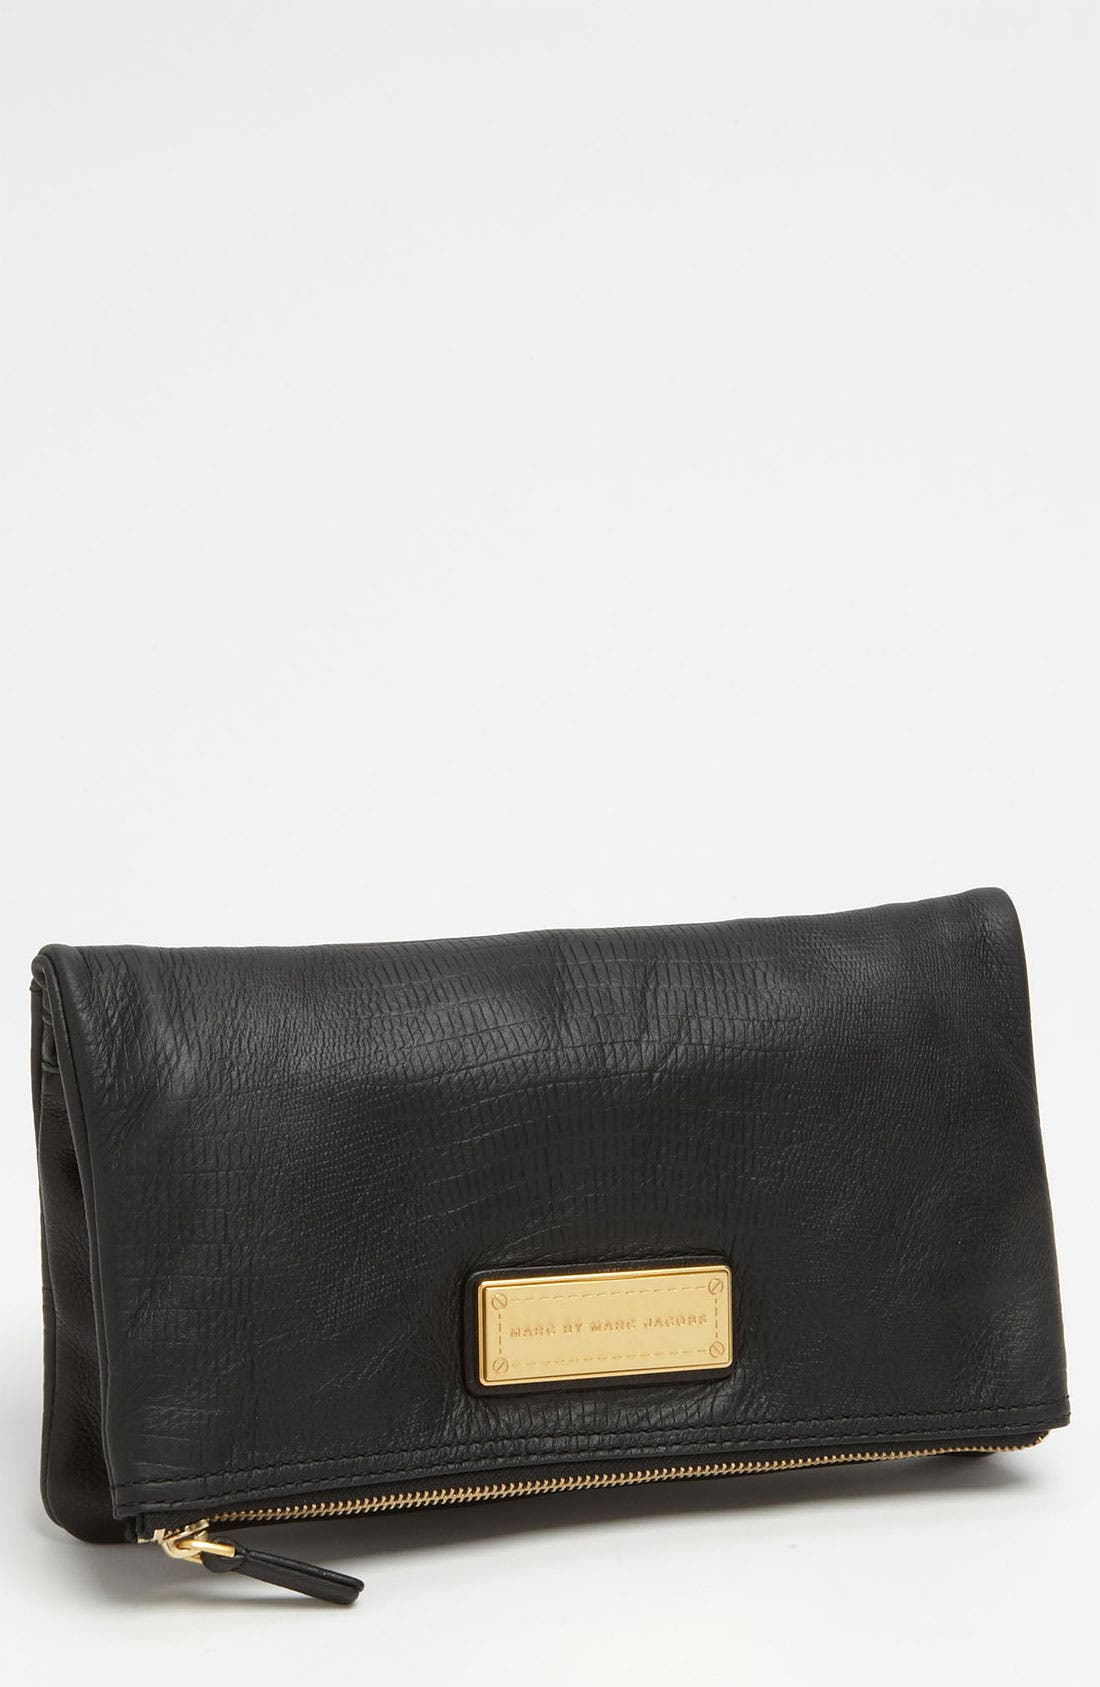 Main Image - MARC BY MARC JACOBS 'Too Hot to Party' Clutch